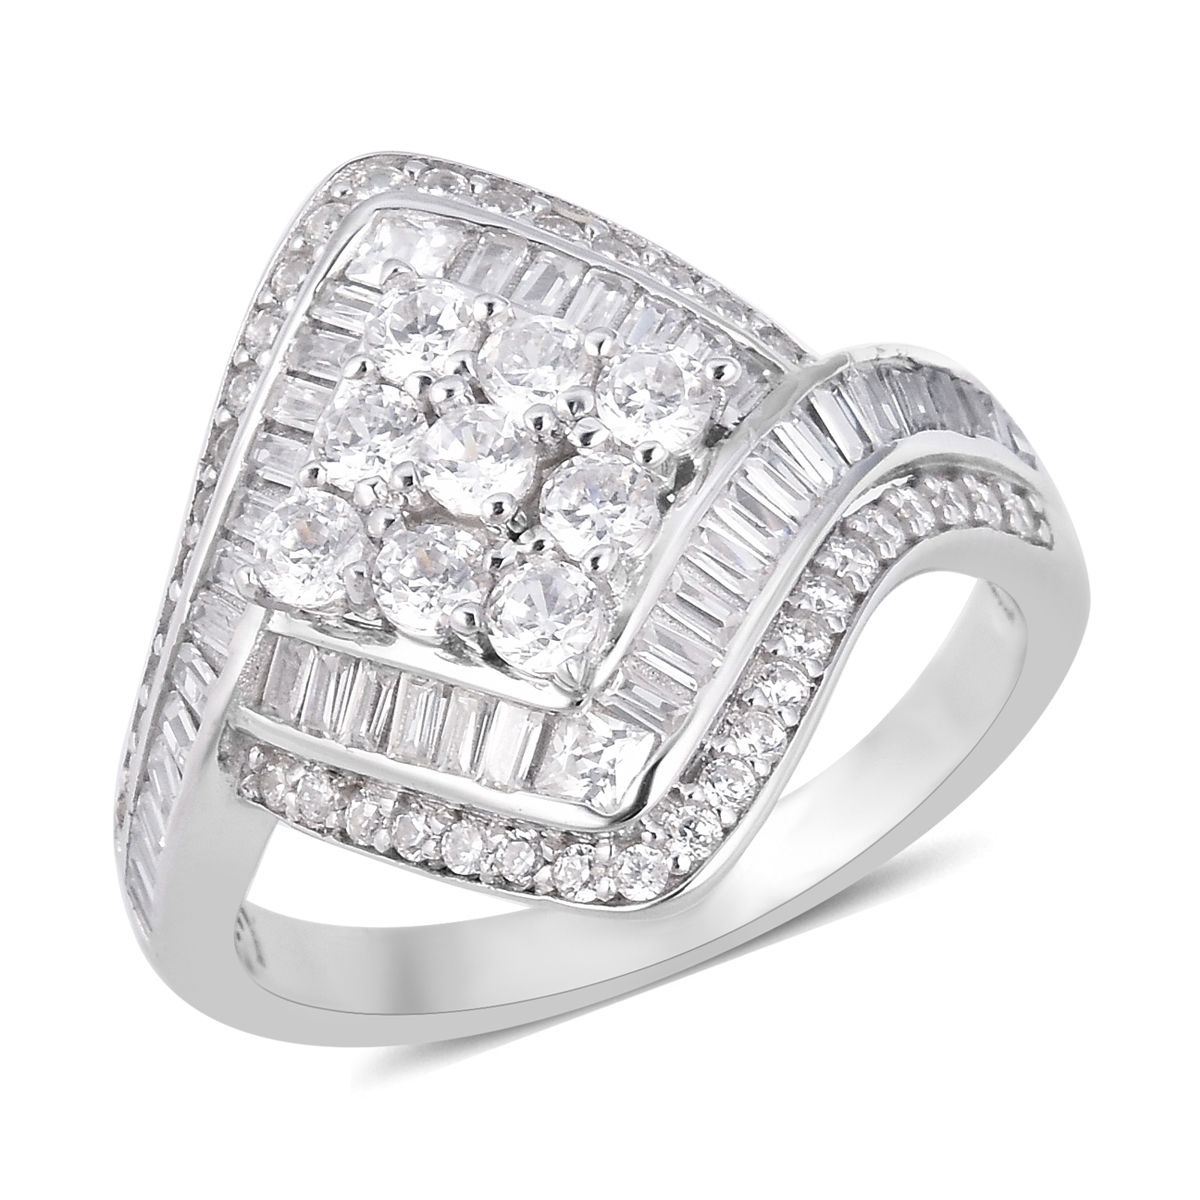 LUSTRO STELLA CZ Ring in Sterling Silver (Size 11.0) 3.15 ctw